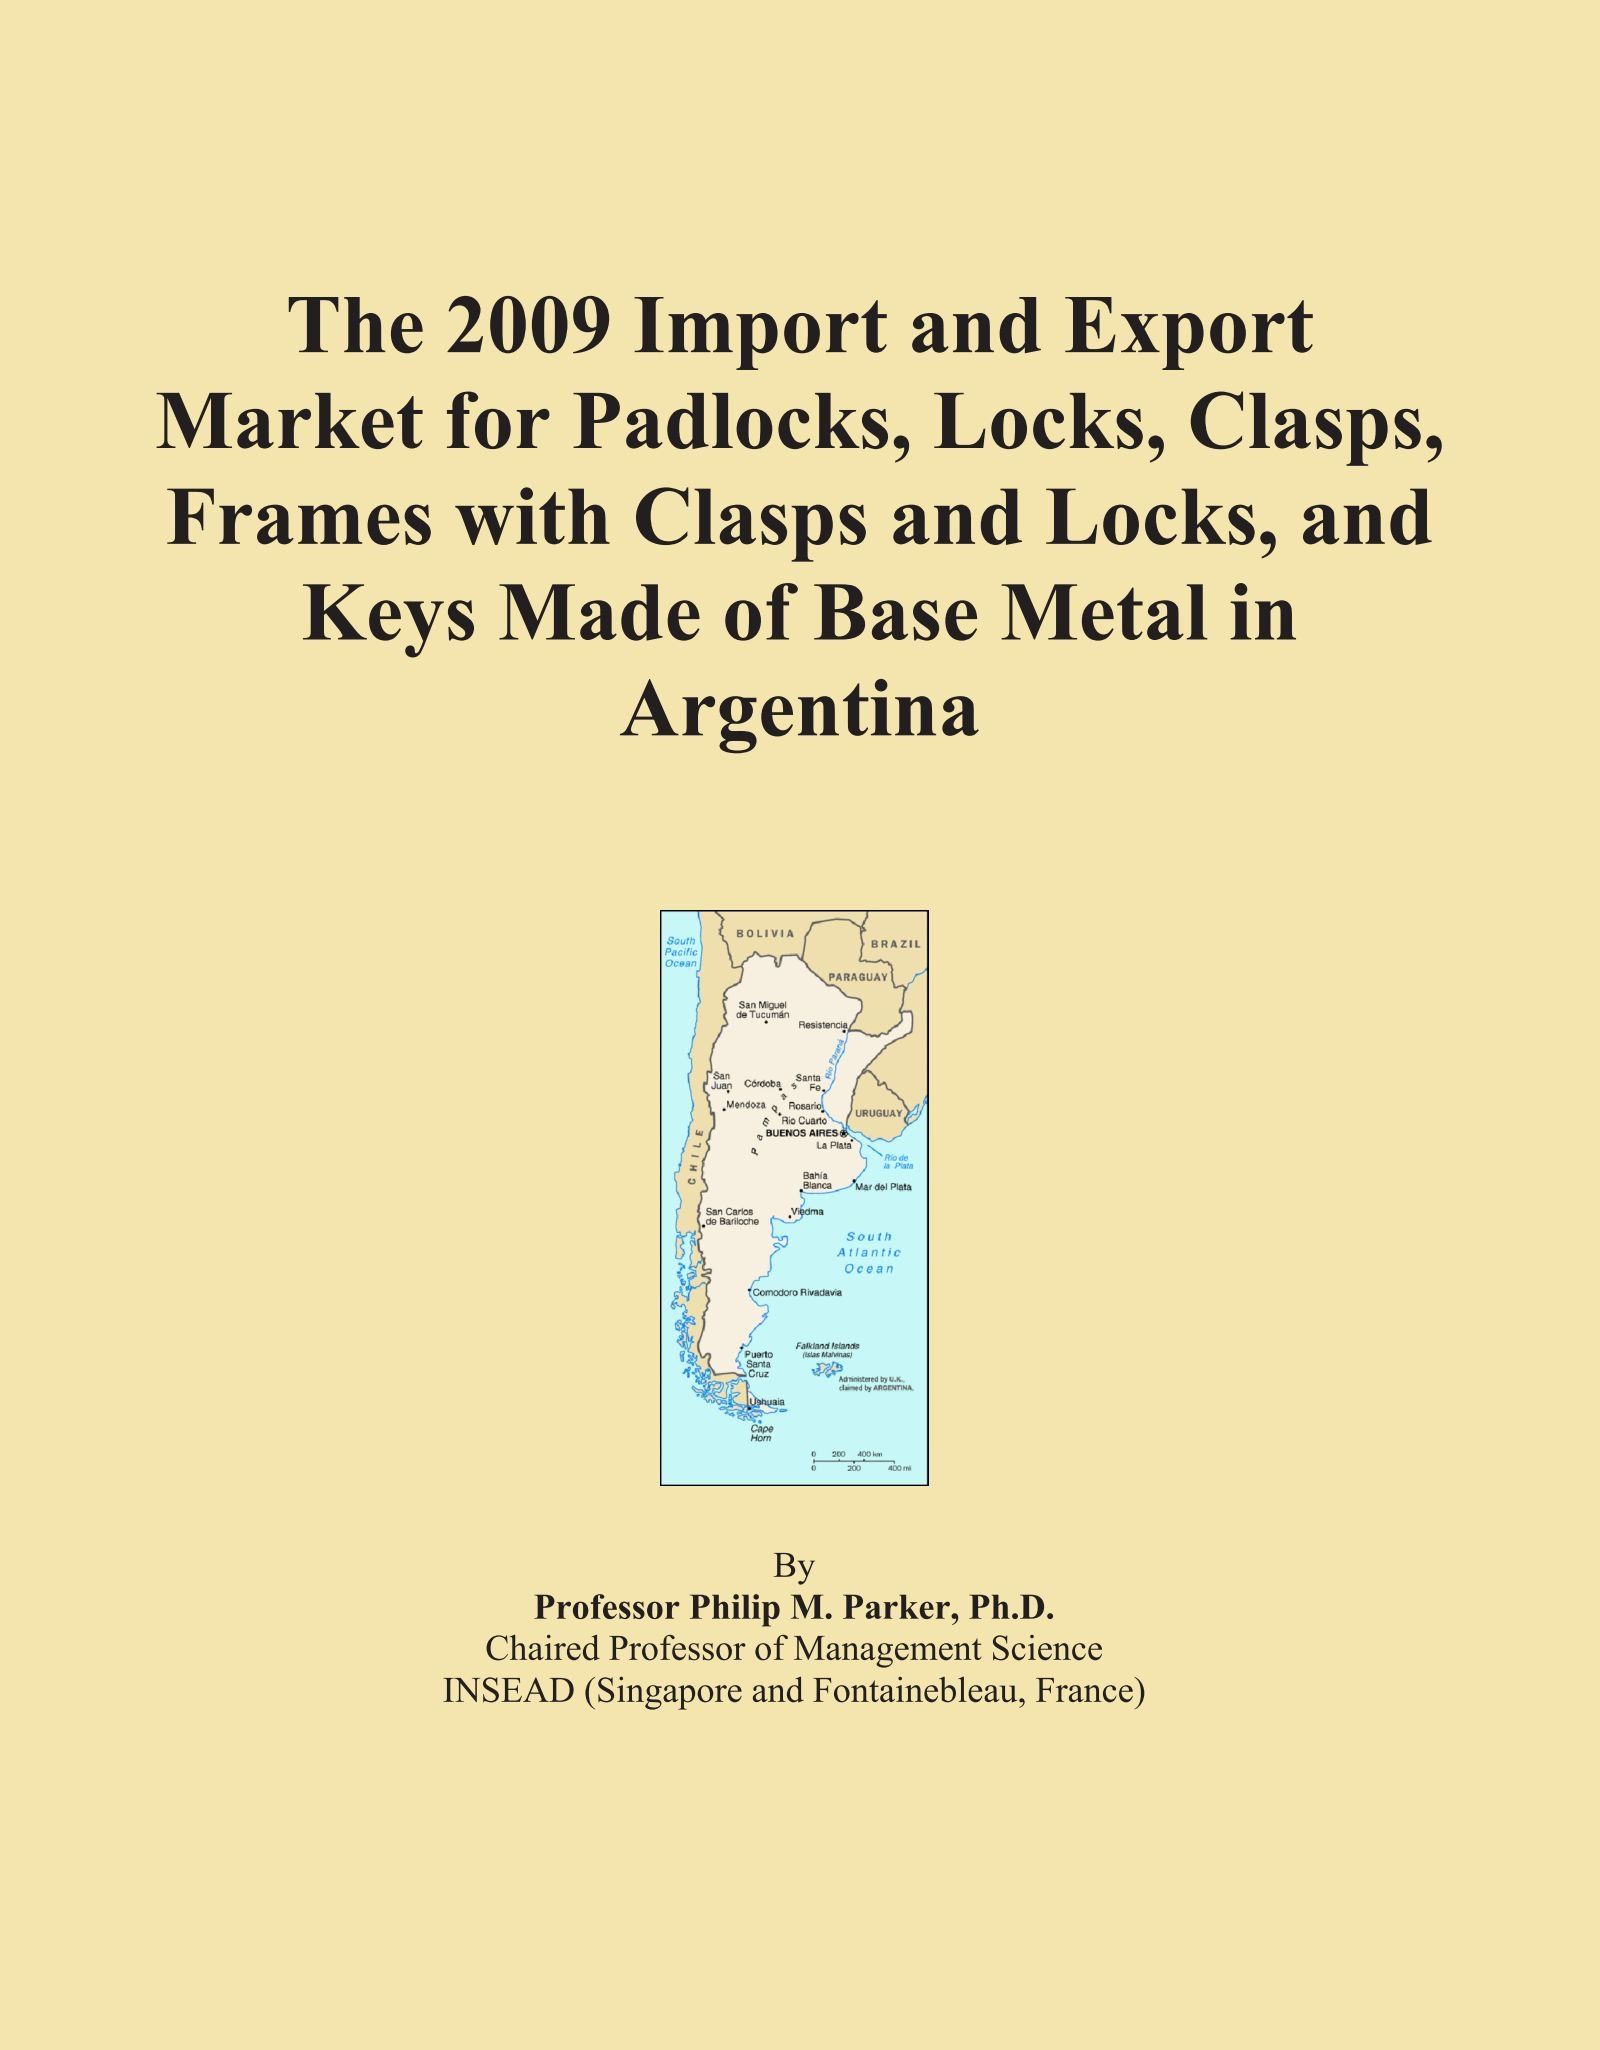 The 2009 Import and Export Market for Padlocks, Locks, Clasps, Frames with Clasps and Locks, and Keys Made of Base Metal in Argentina ebook